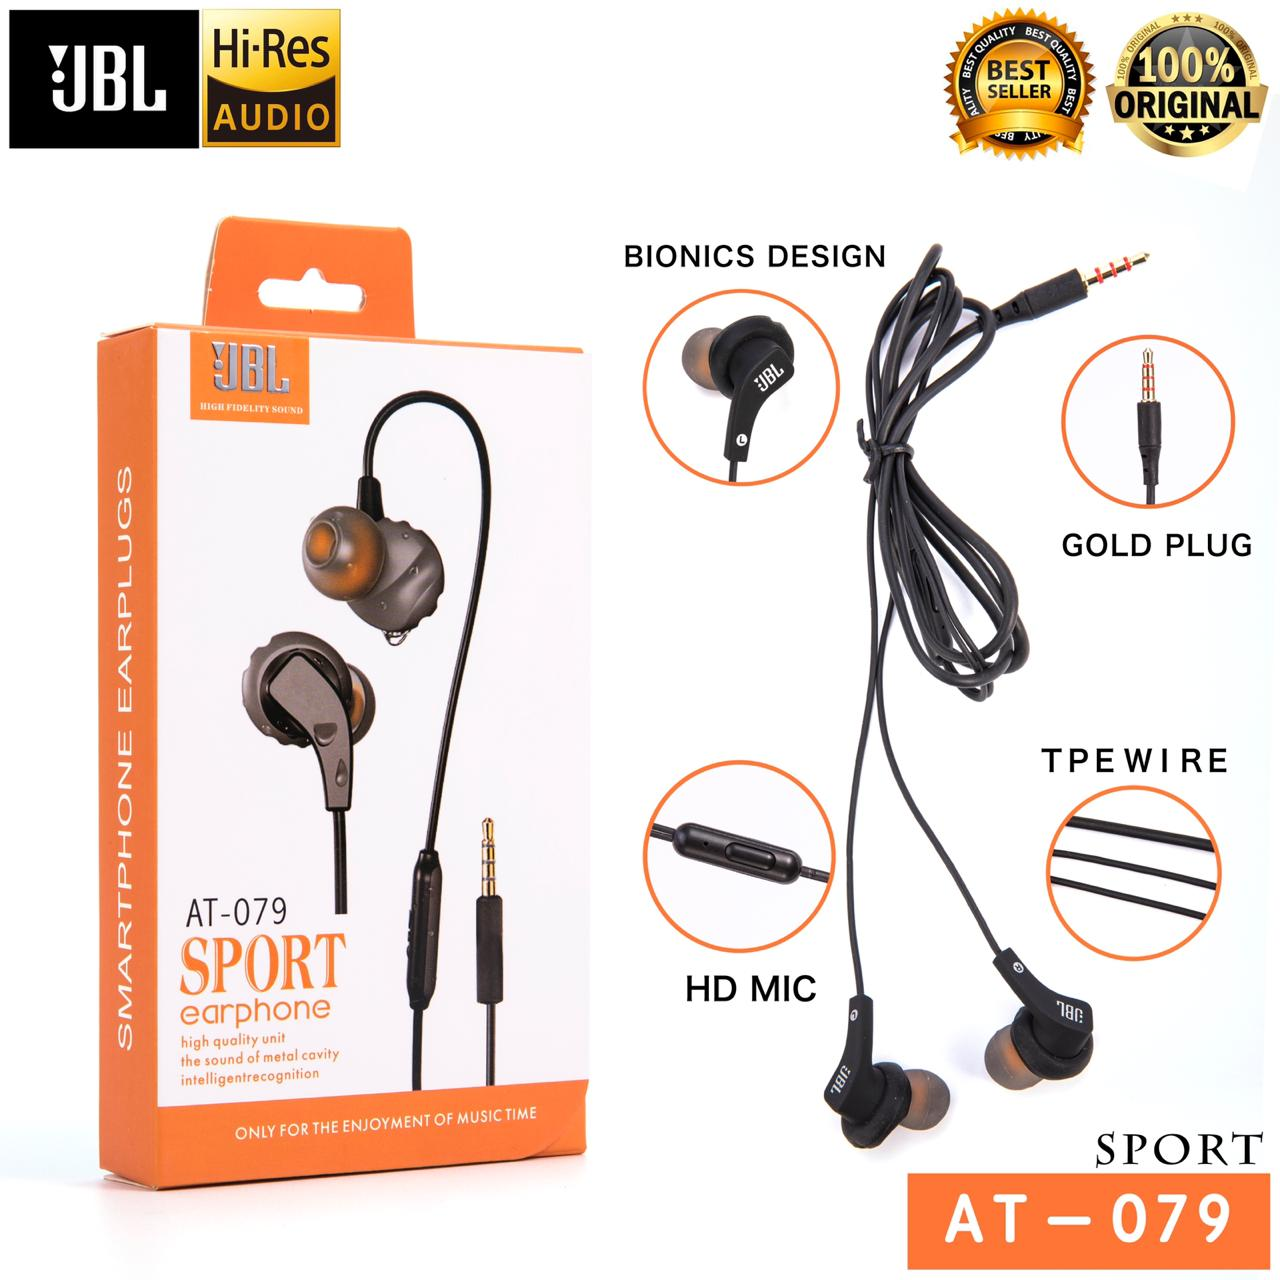 Handsfree JBL Bluetooth JBL AT-079